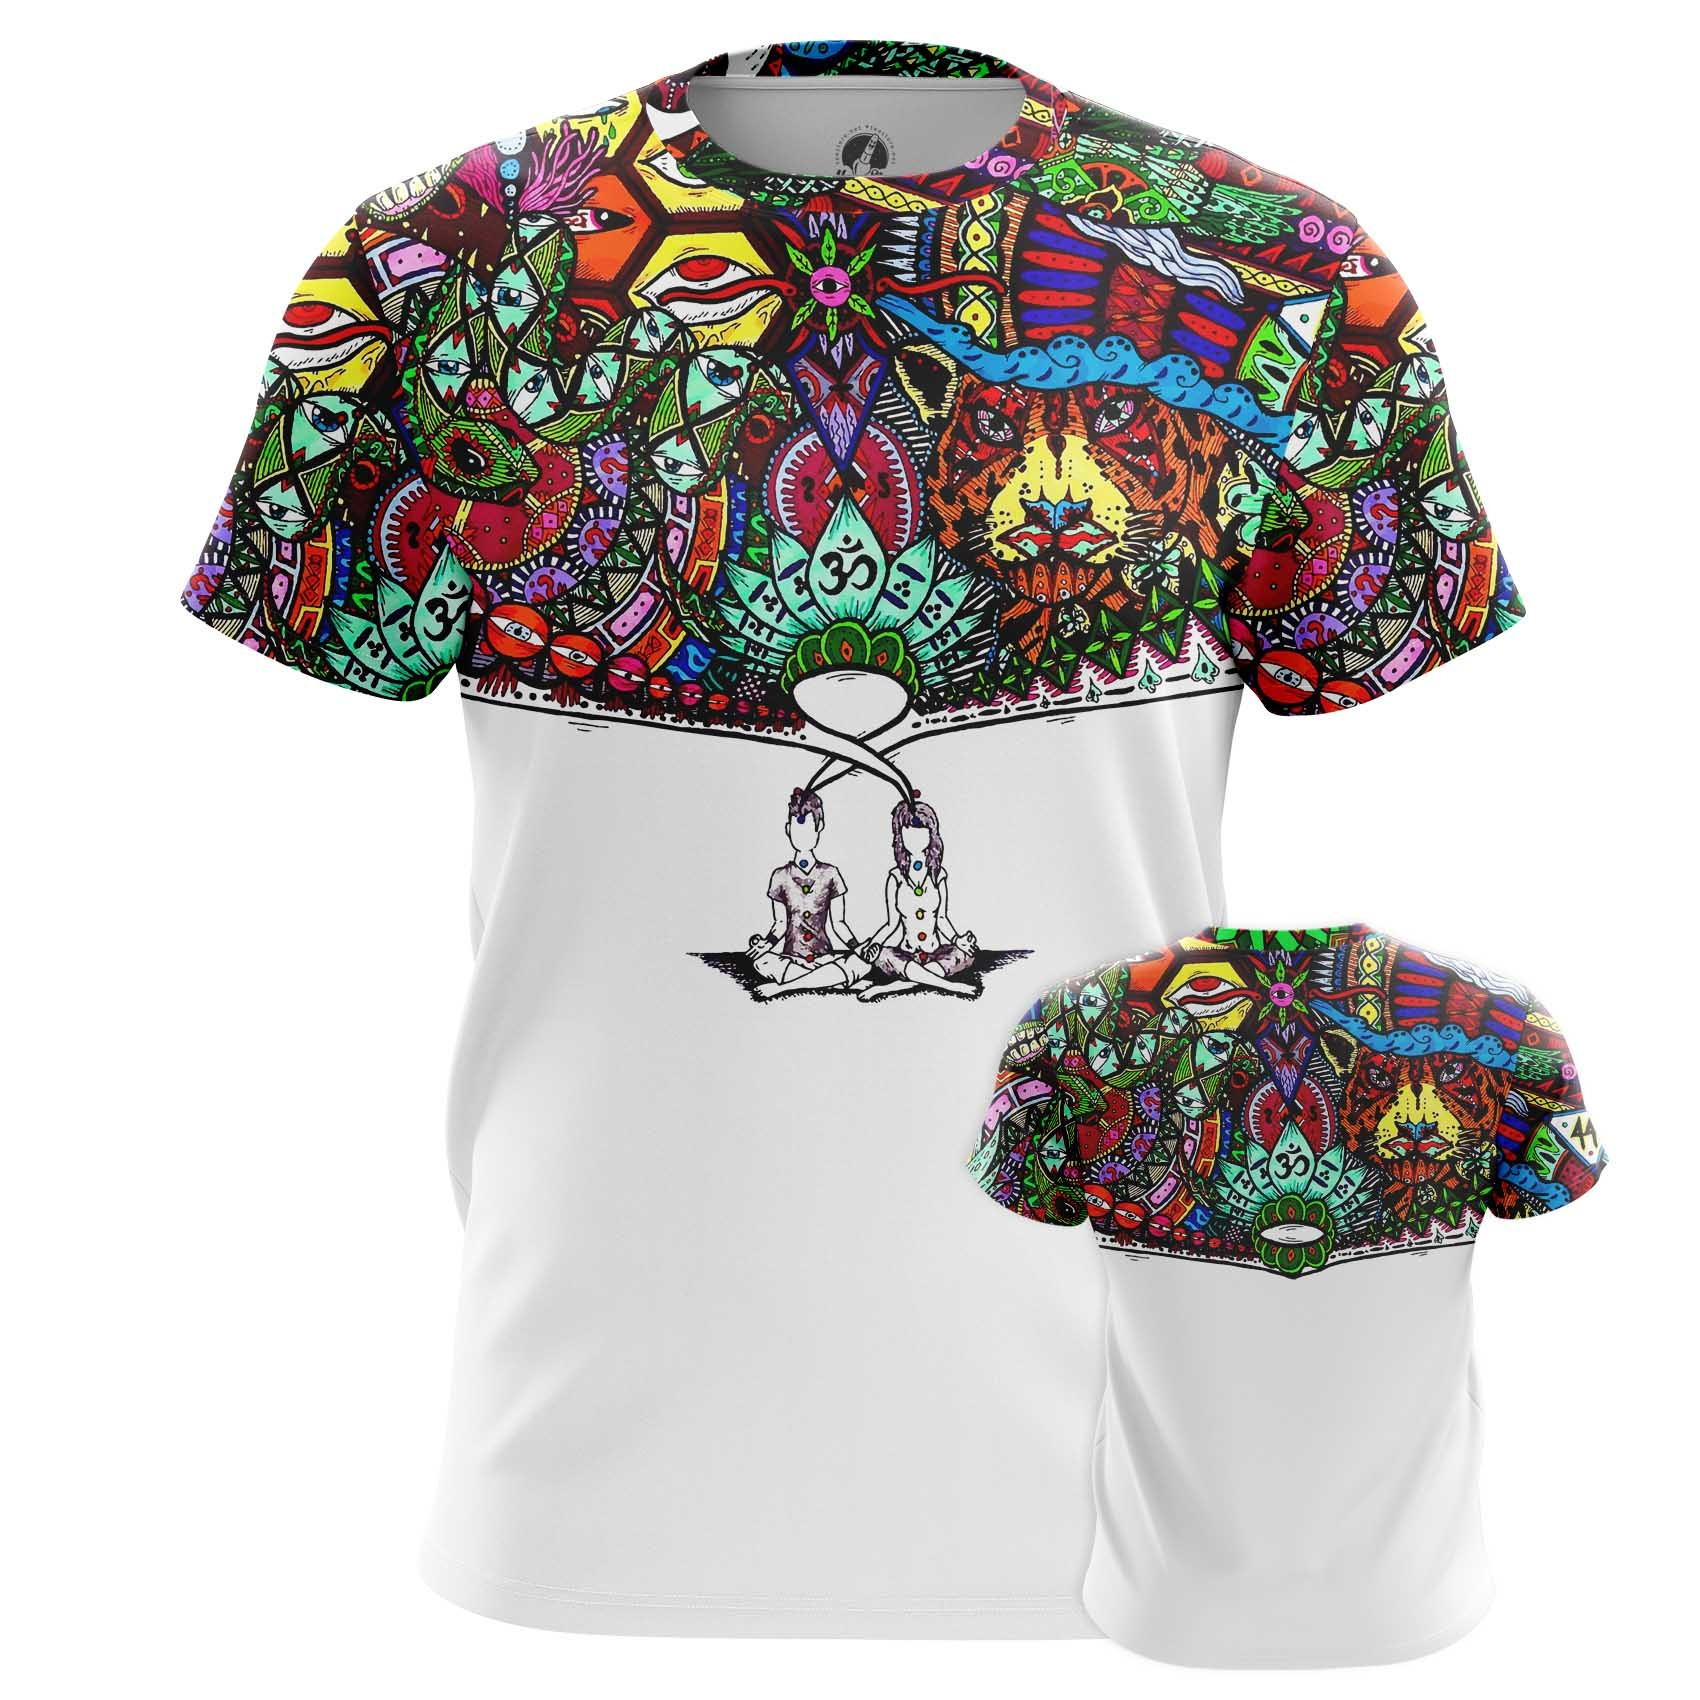 Collectibles Men'S Long Sleeve Mindfulness Yoga Inspired Shirt